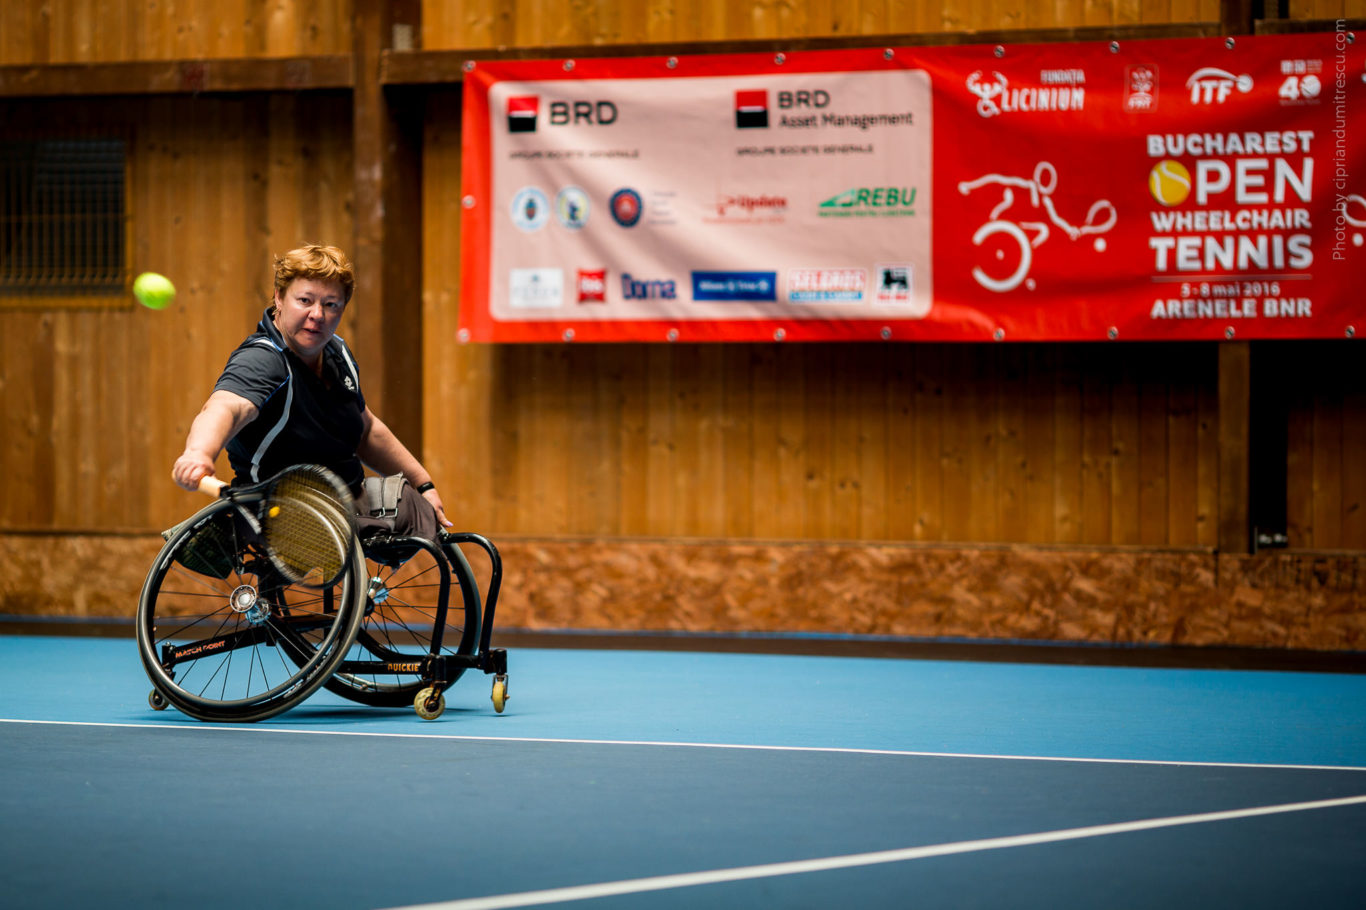 004-Bucharest-Open-Wheelchair-2016-Day-One-Photographer-Ciprian-Dumitrescu